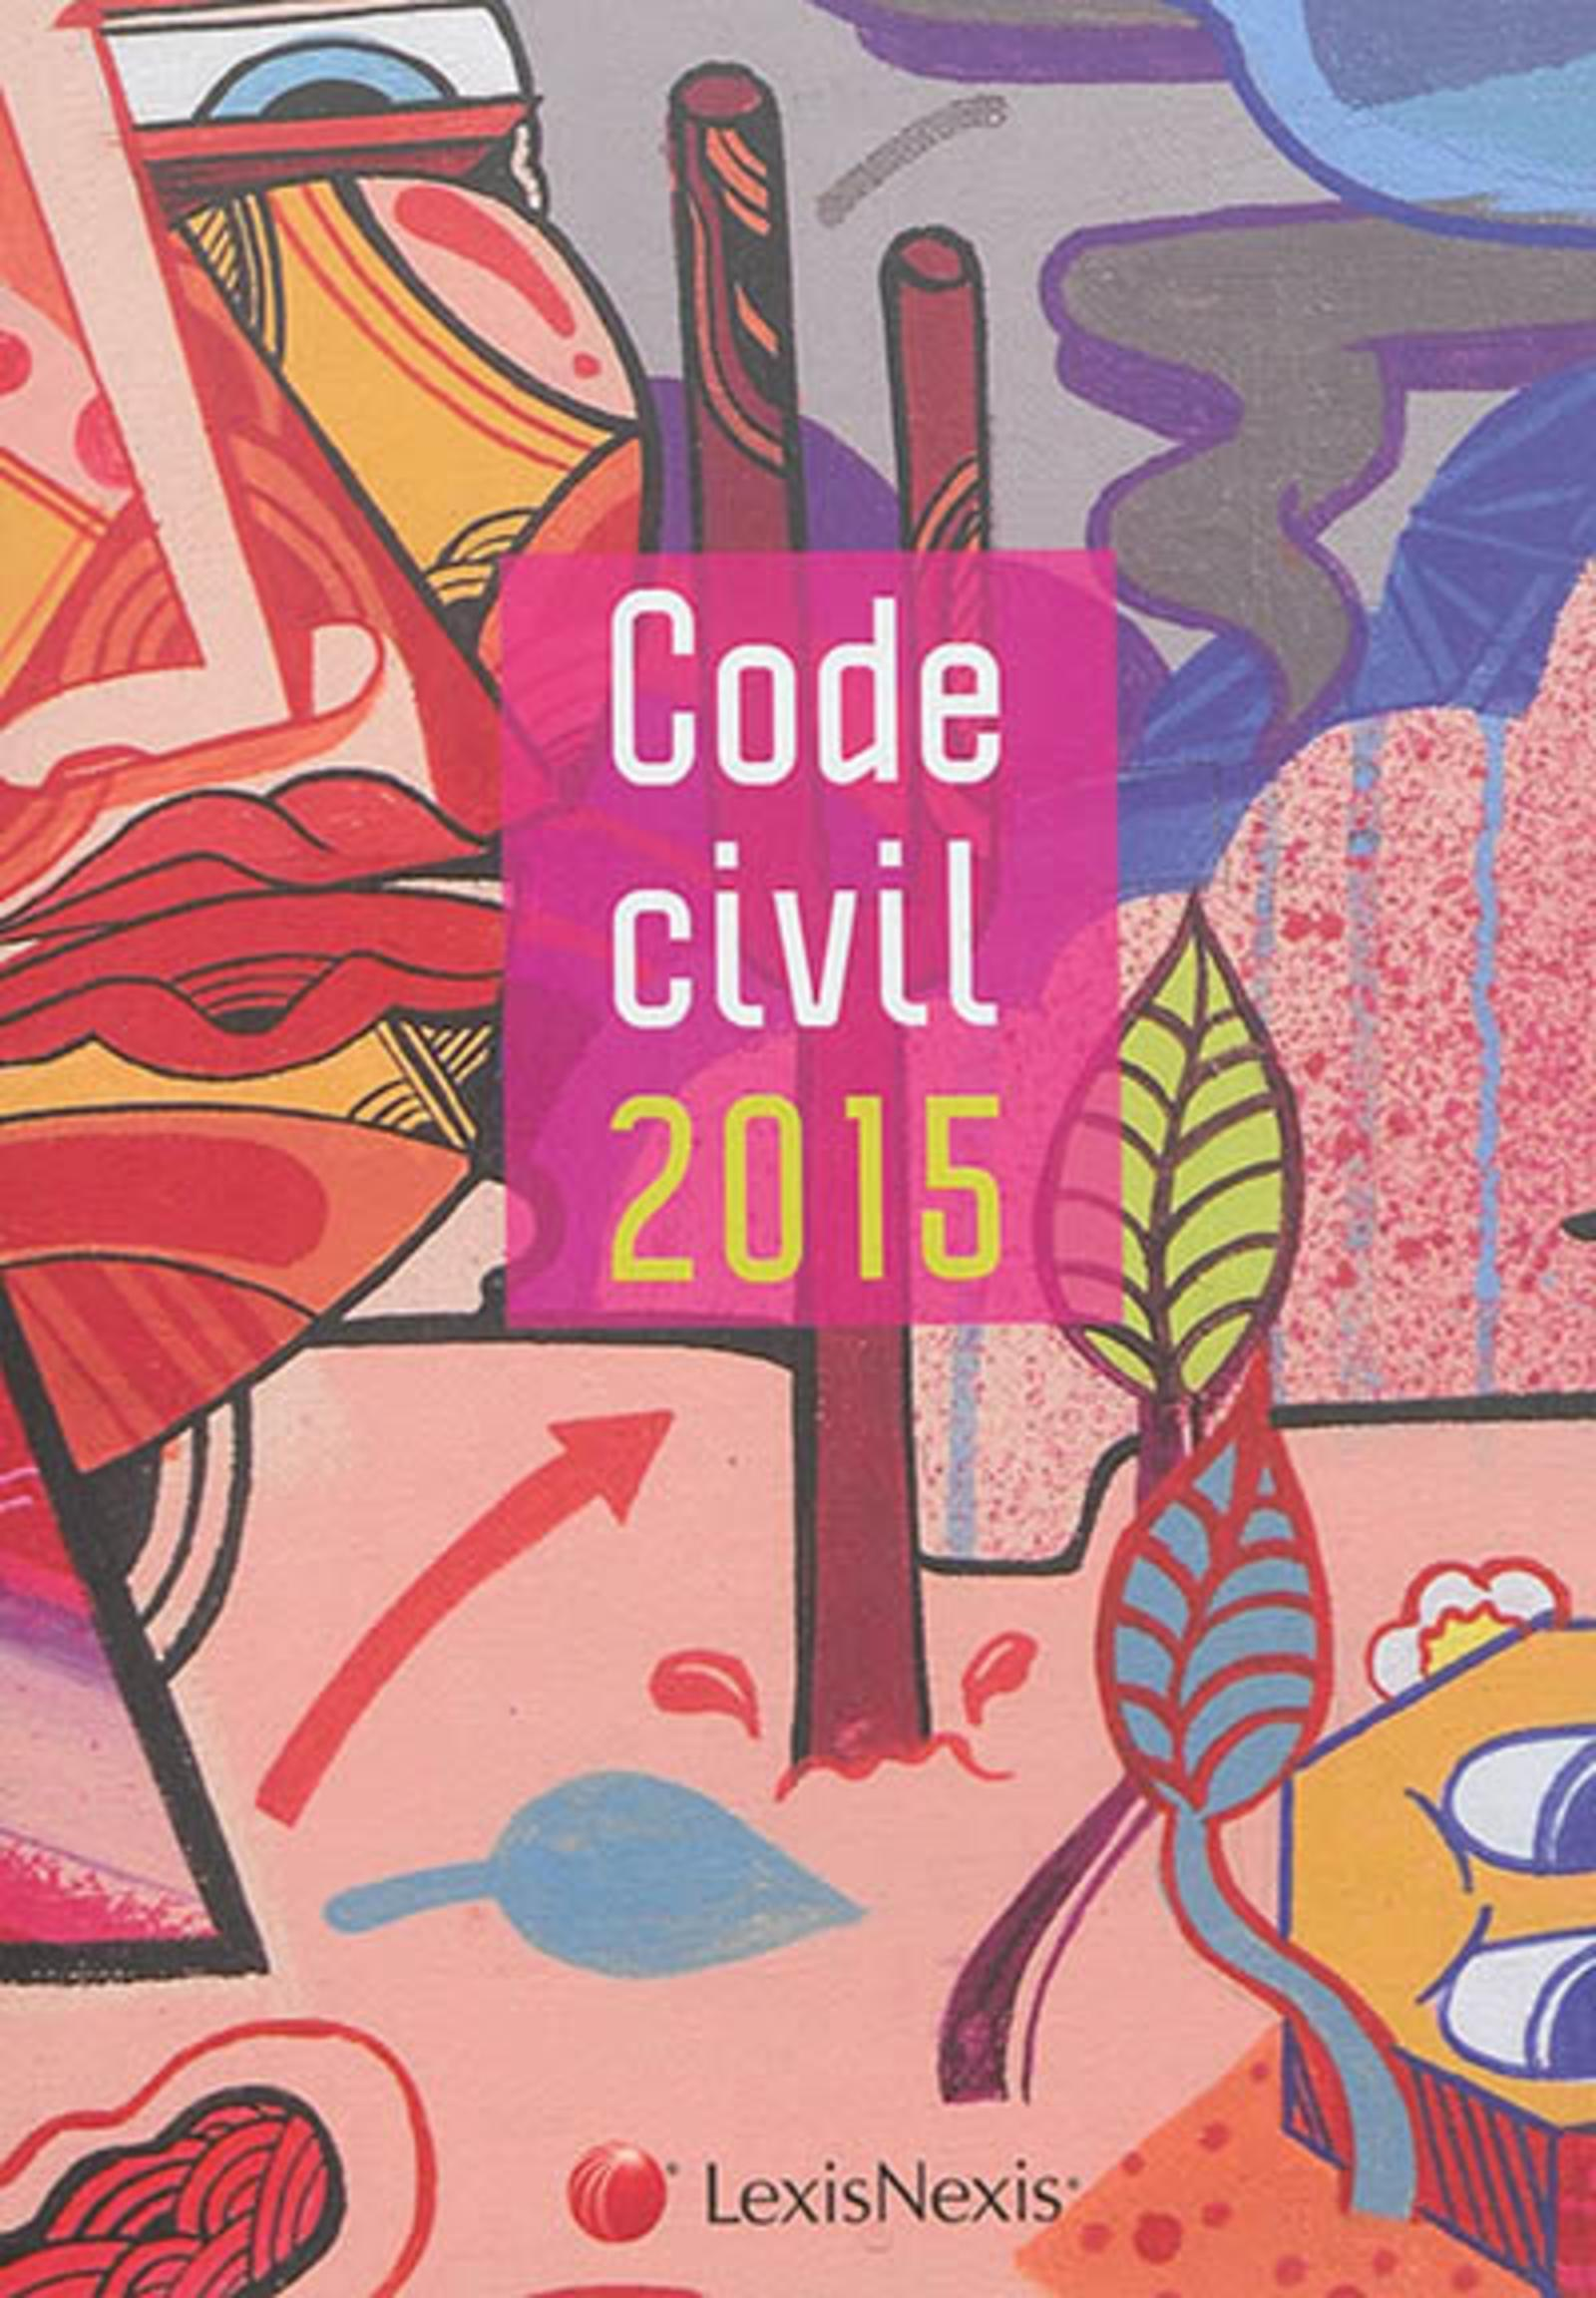 CODE CIVIL 2015 SICKBOY